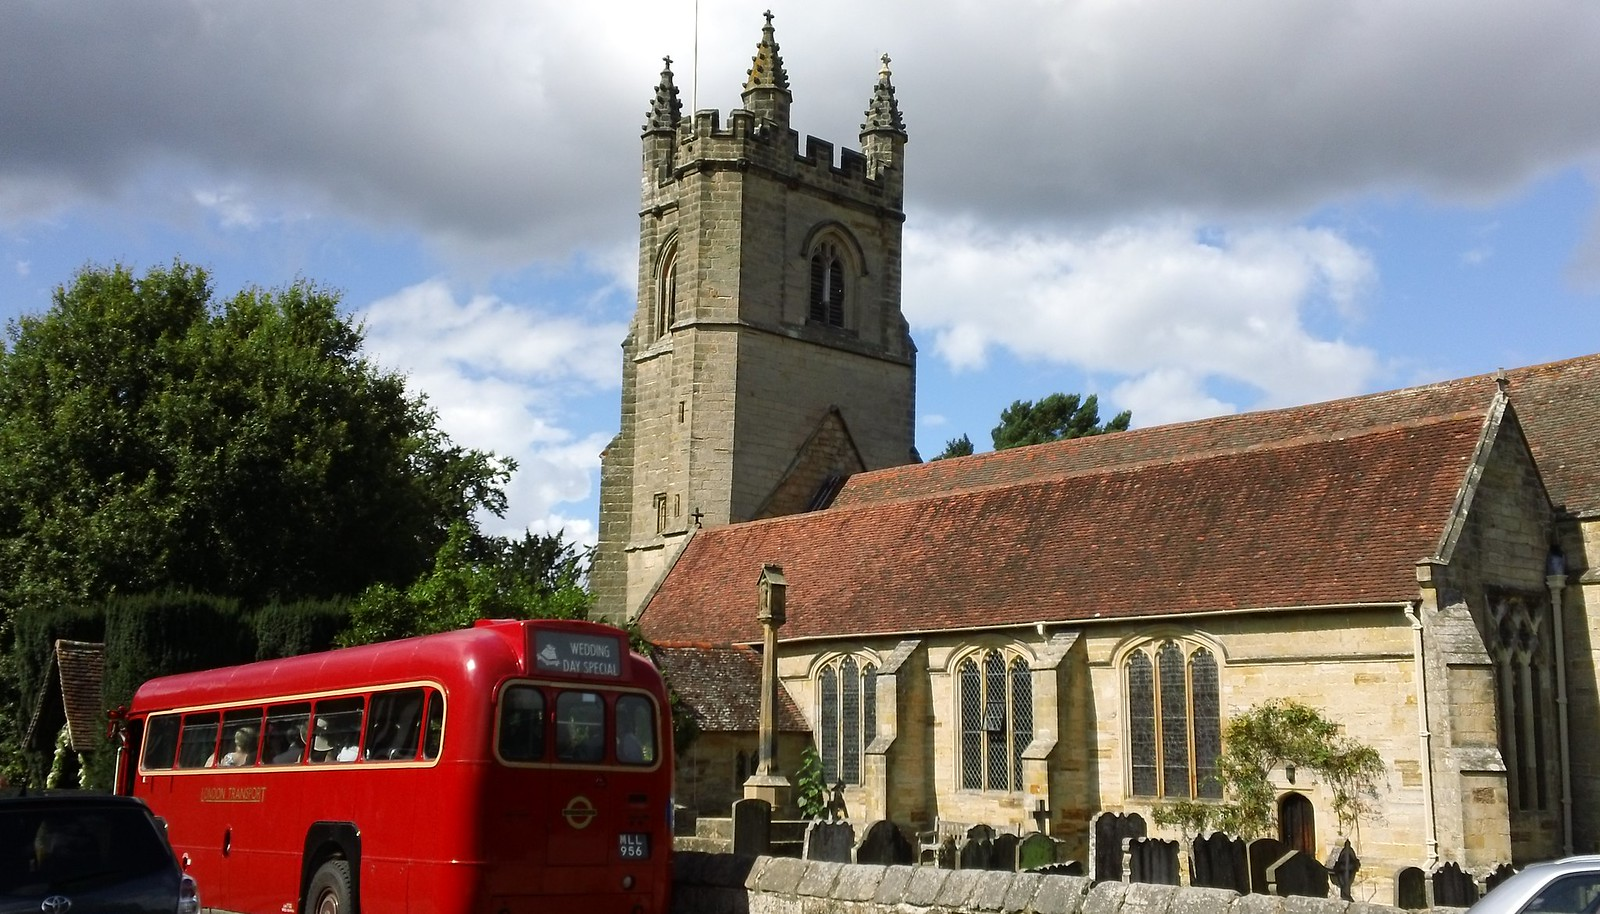 St Mary's Chiddingstone wedding Special vintage bus to ferry guests?